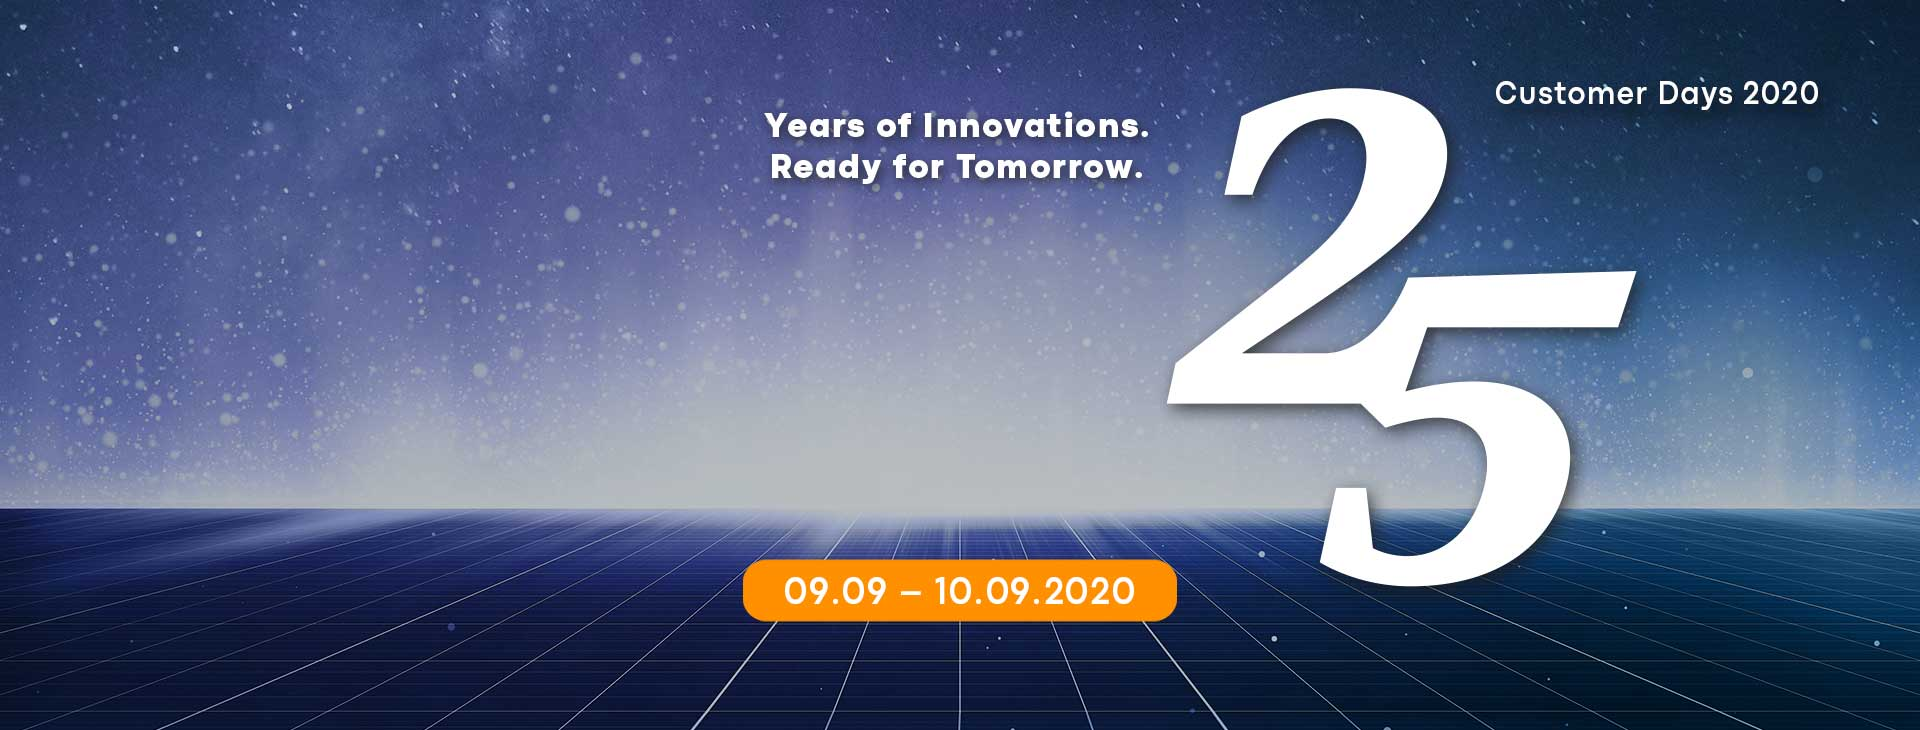 omnitracker banner CDays2020 04 v3